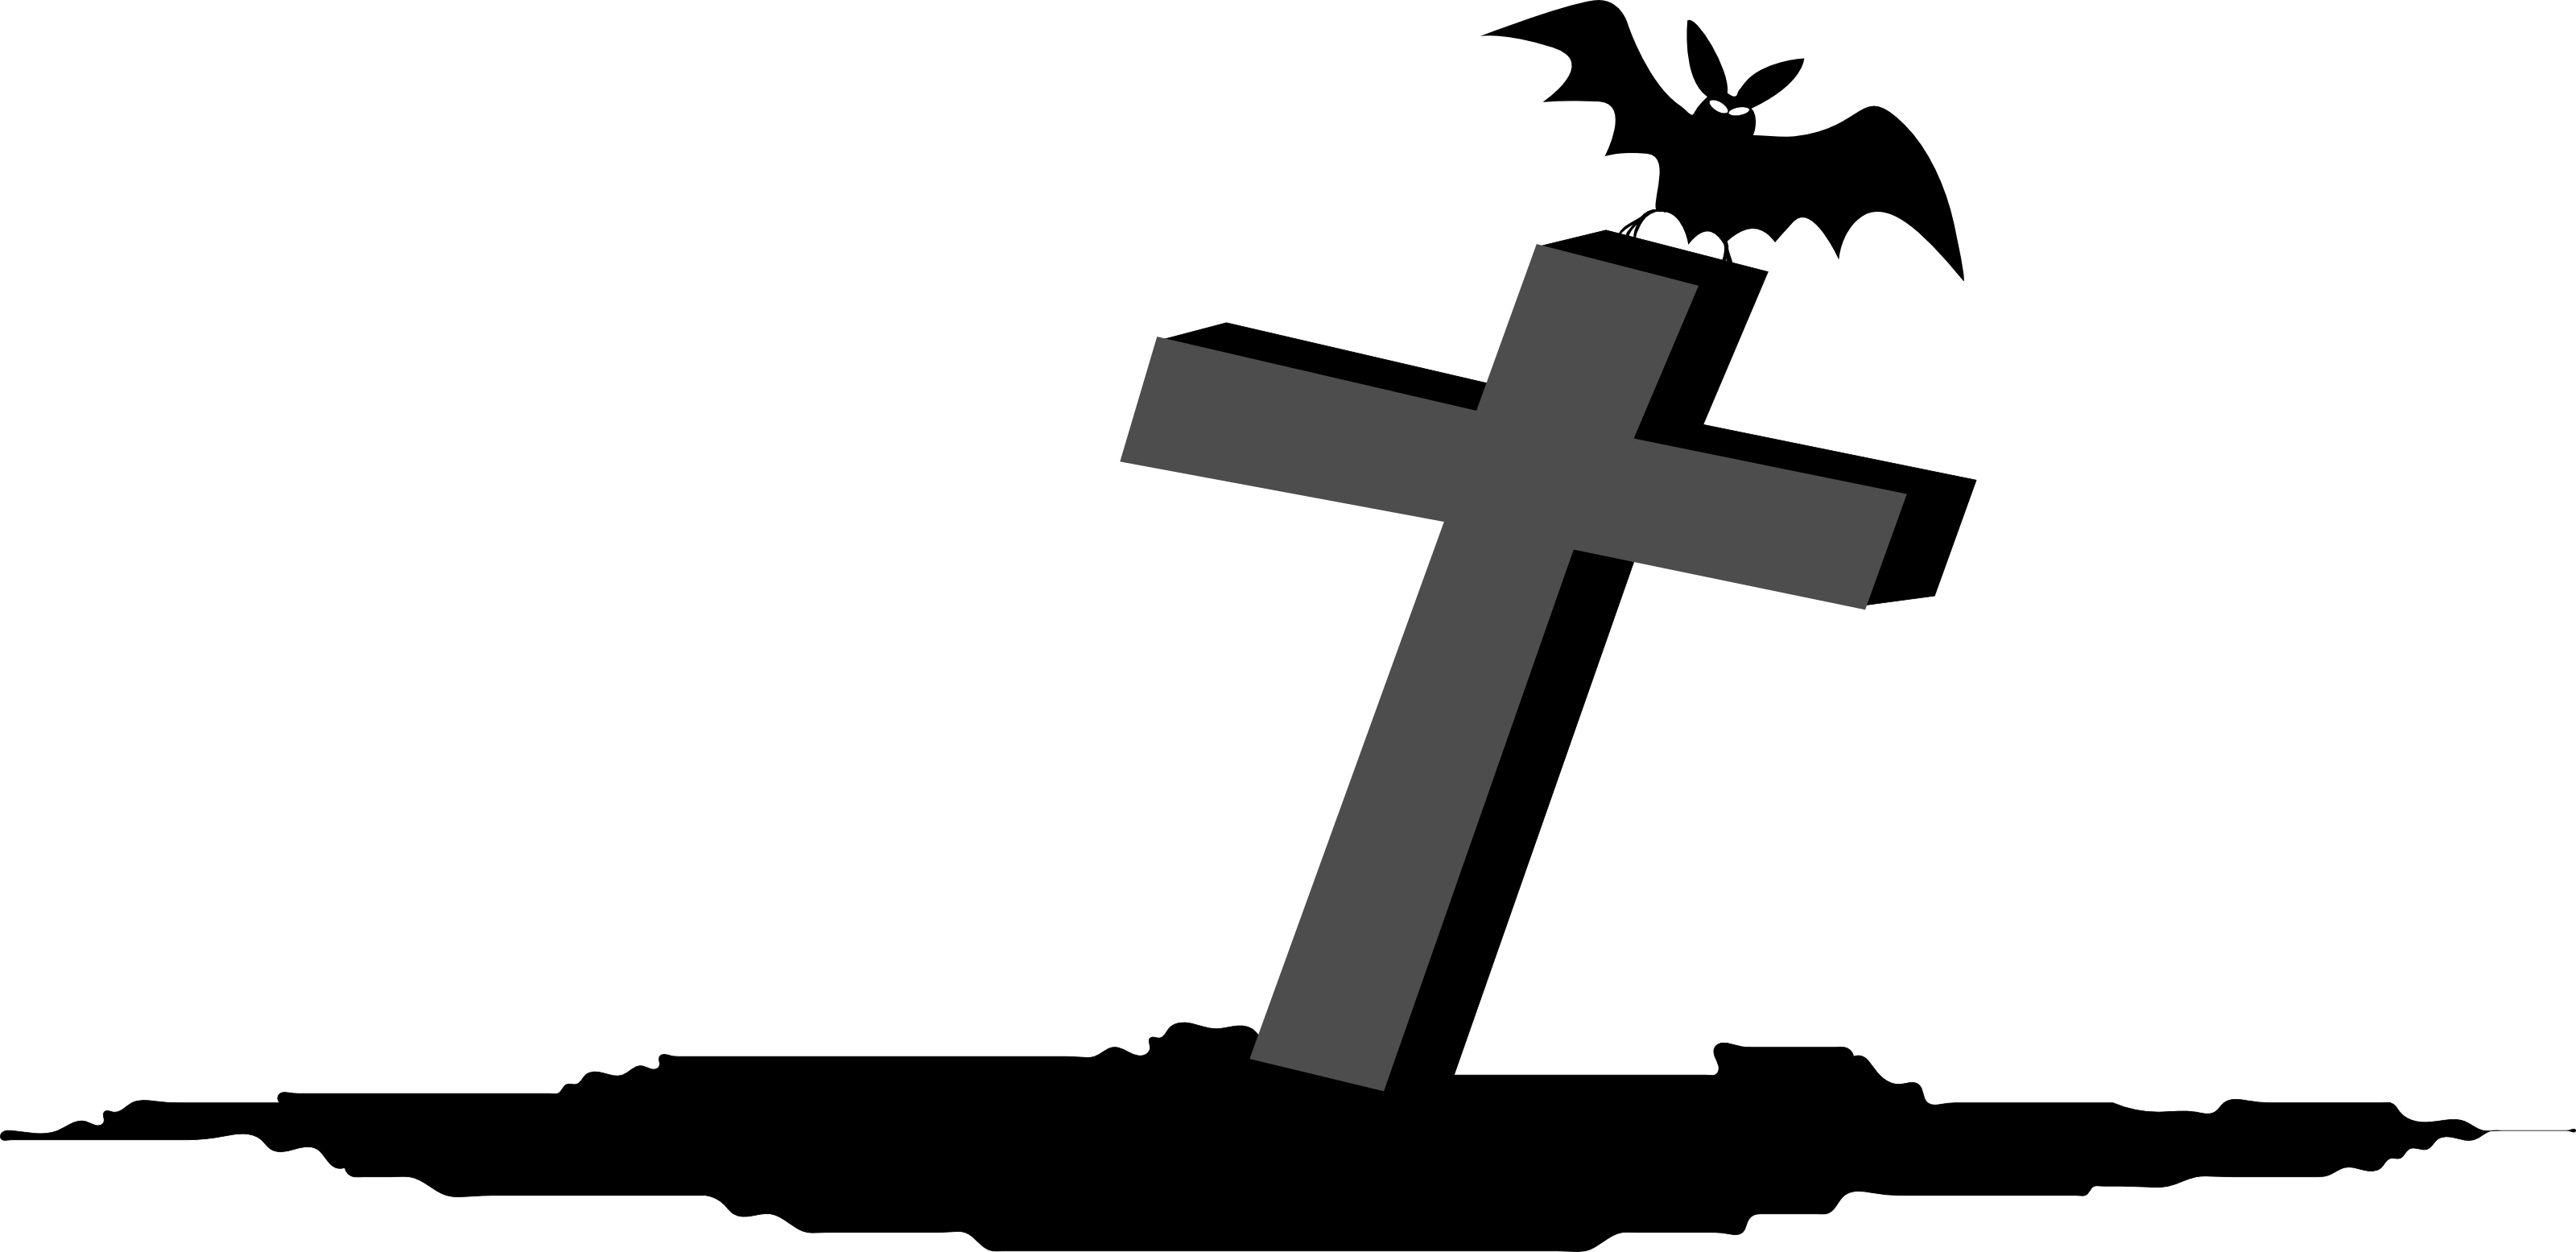 554 Tombstone free clipart.